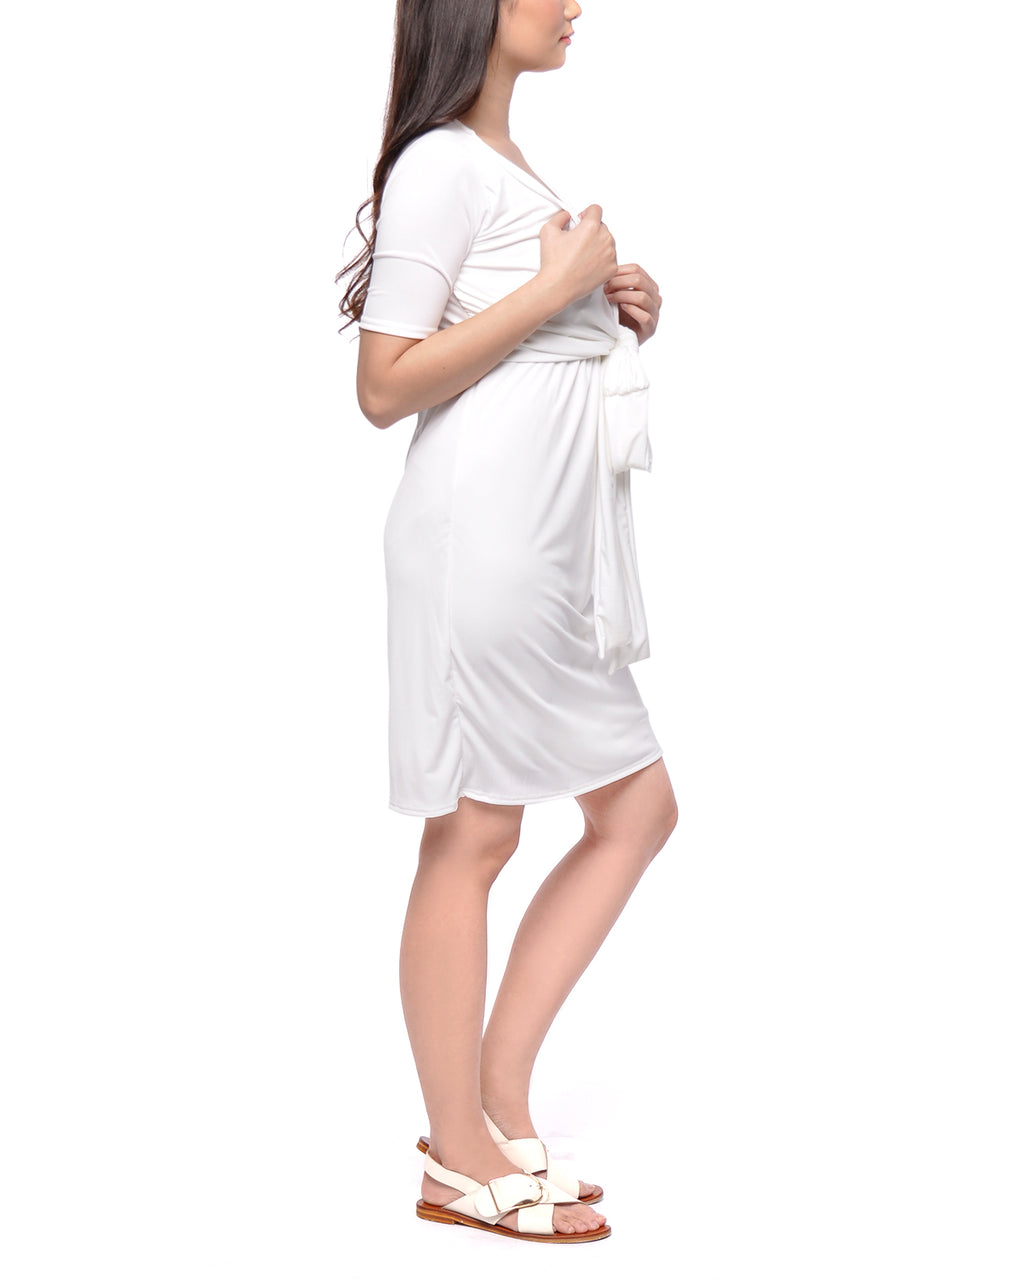 Baptismal Ginny Nursing Dress Lined